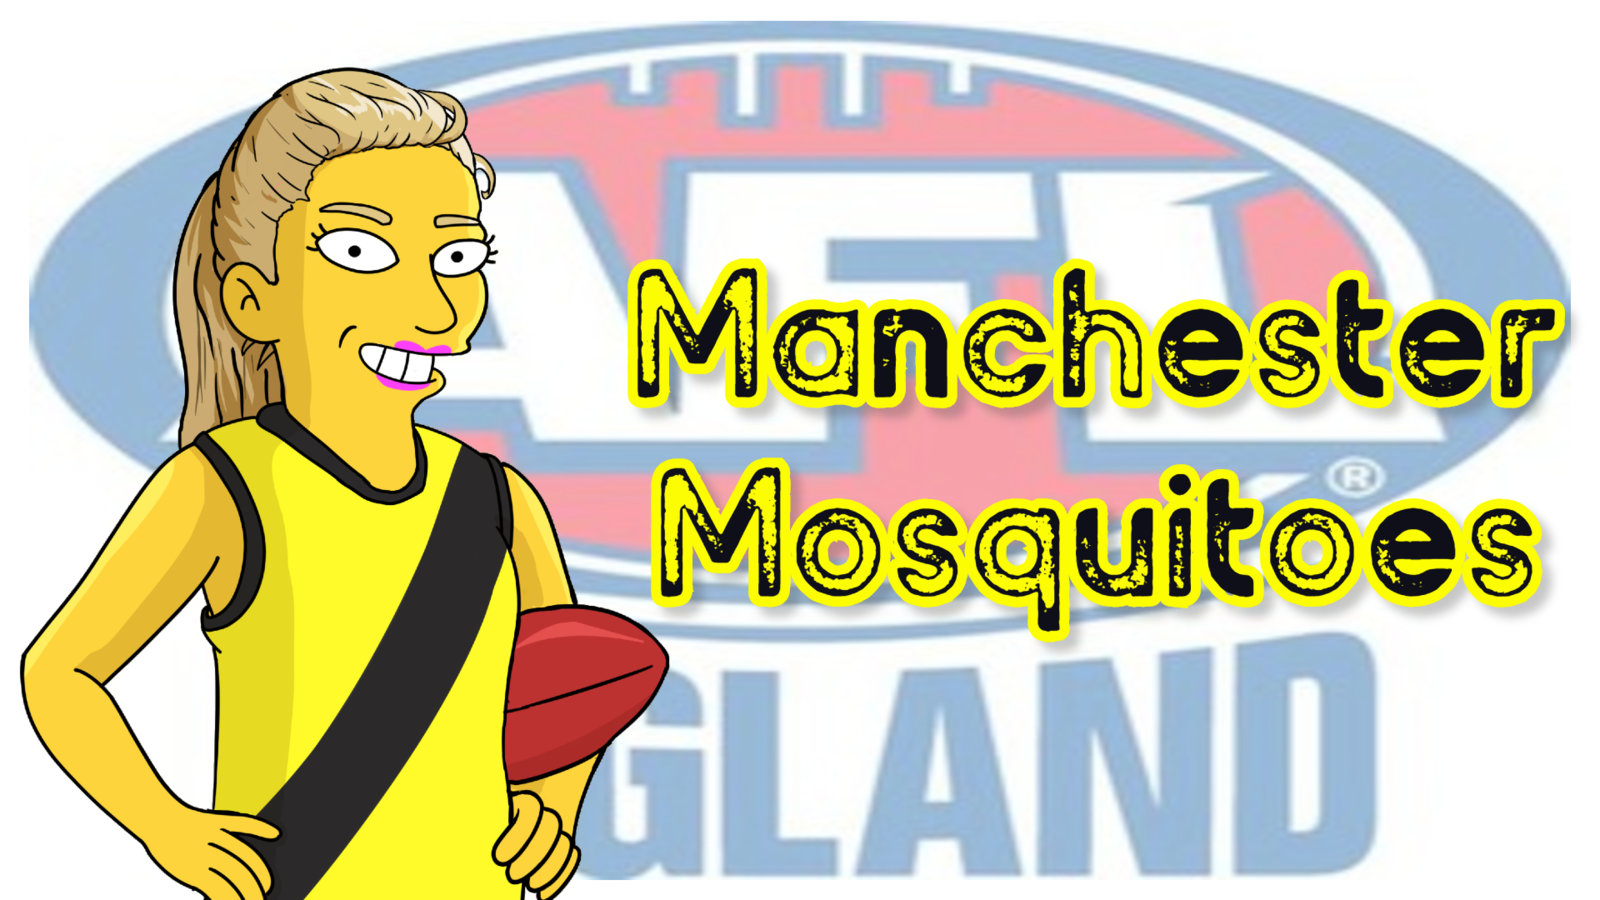 AFL Europe 2020 - Manchester Mosquitoes.jpg